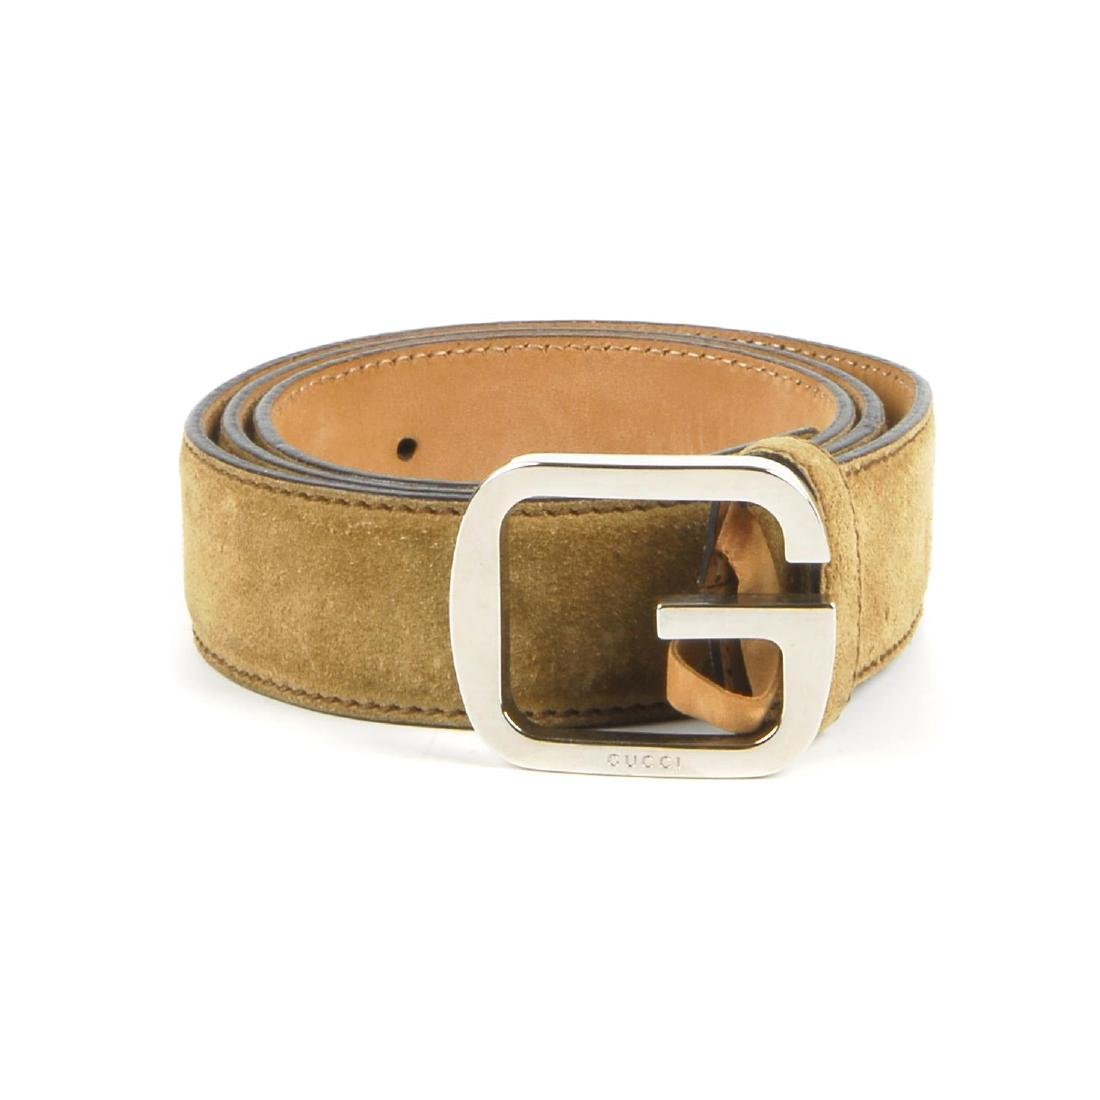 GUCCI - a suede belt. Crafted from beige suede, with a